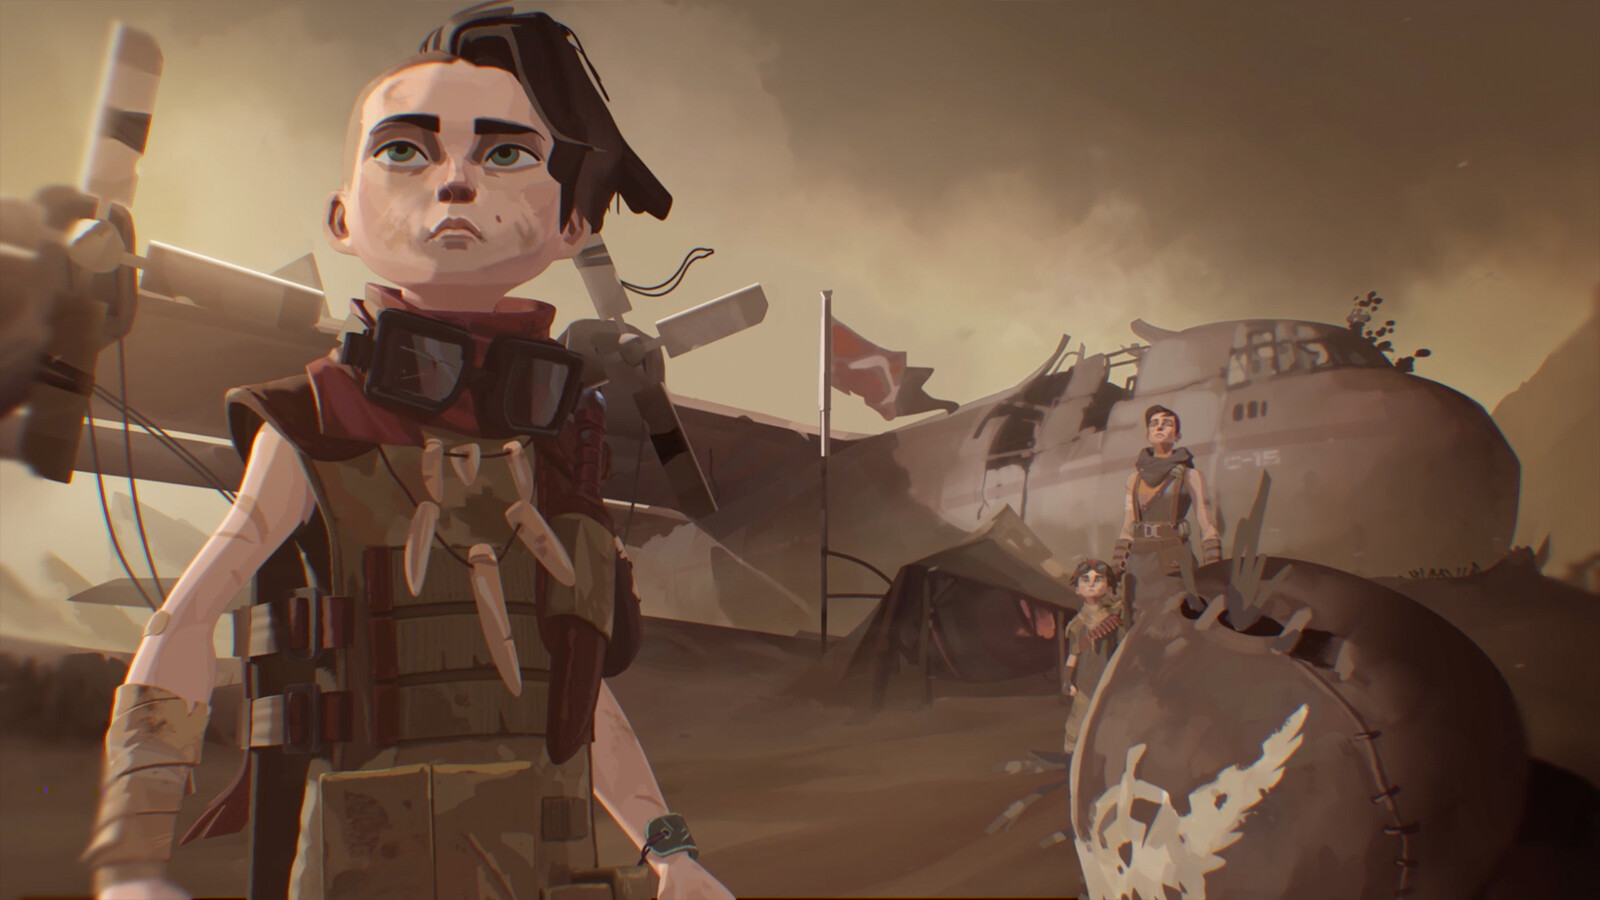 Final frame I art Directed and painted, initial visual development by Pedro Kruger